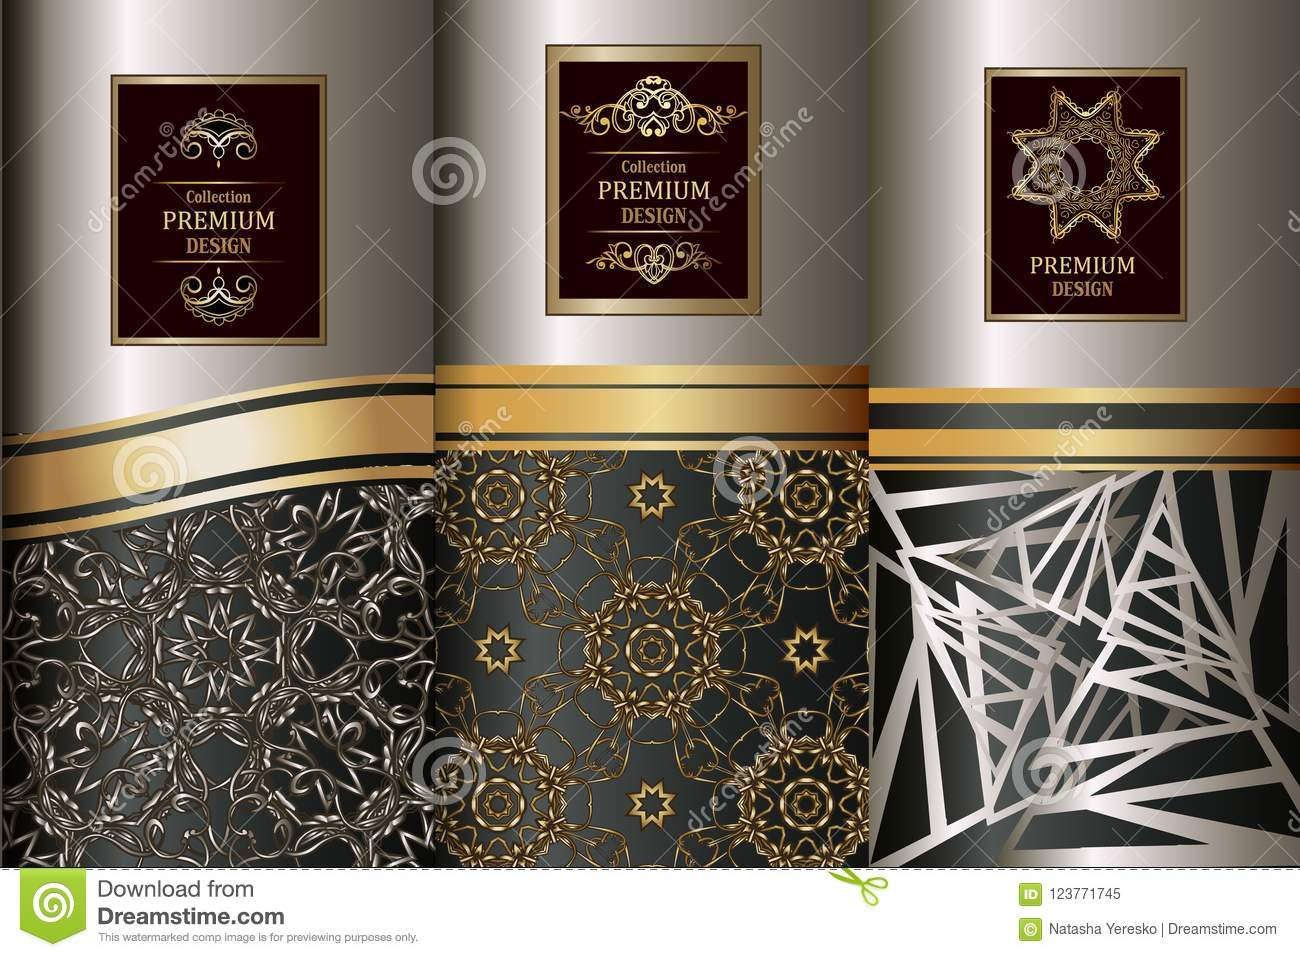 503d14cb2b63 Royalty-Free Vector. Collection of design elements